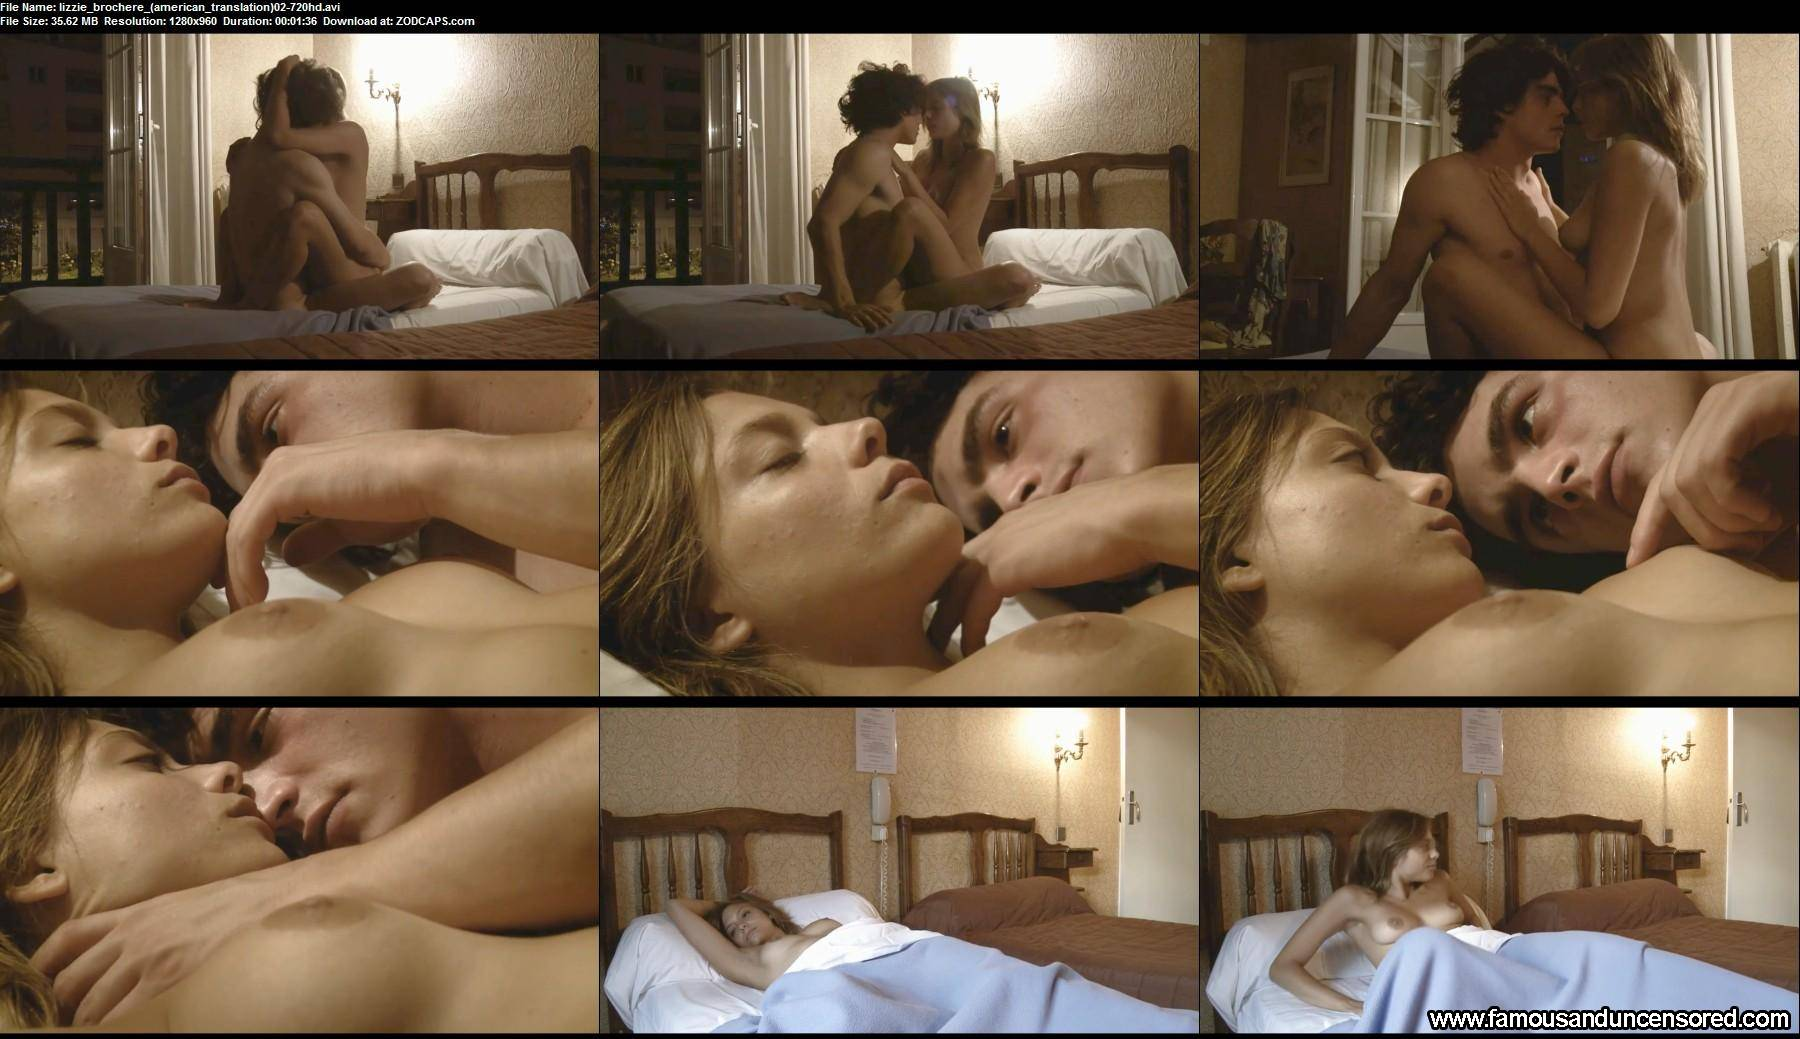 State affairs lizzie brochere american translation in nude